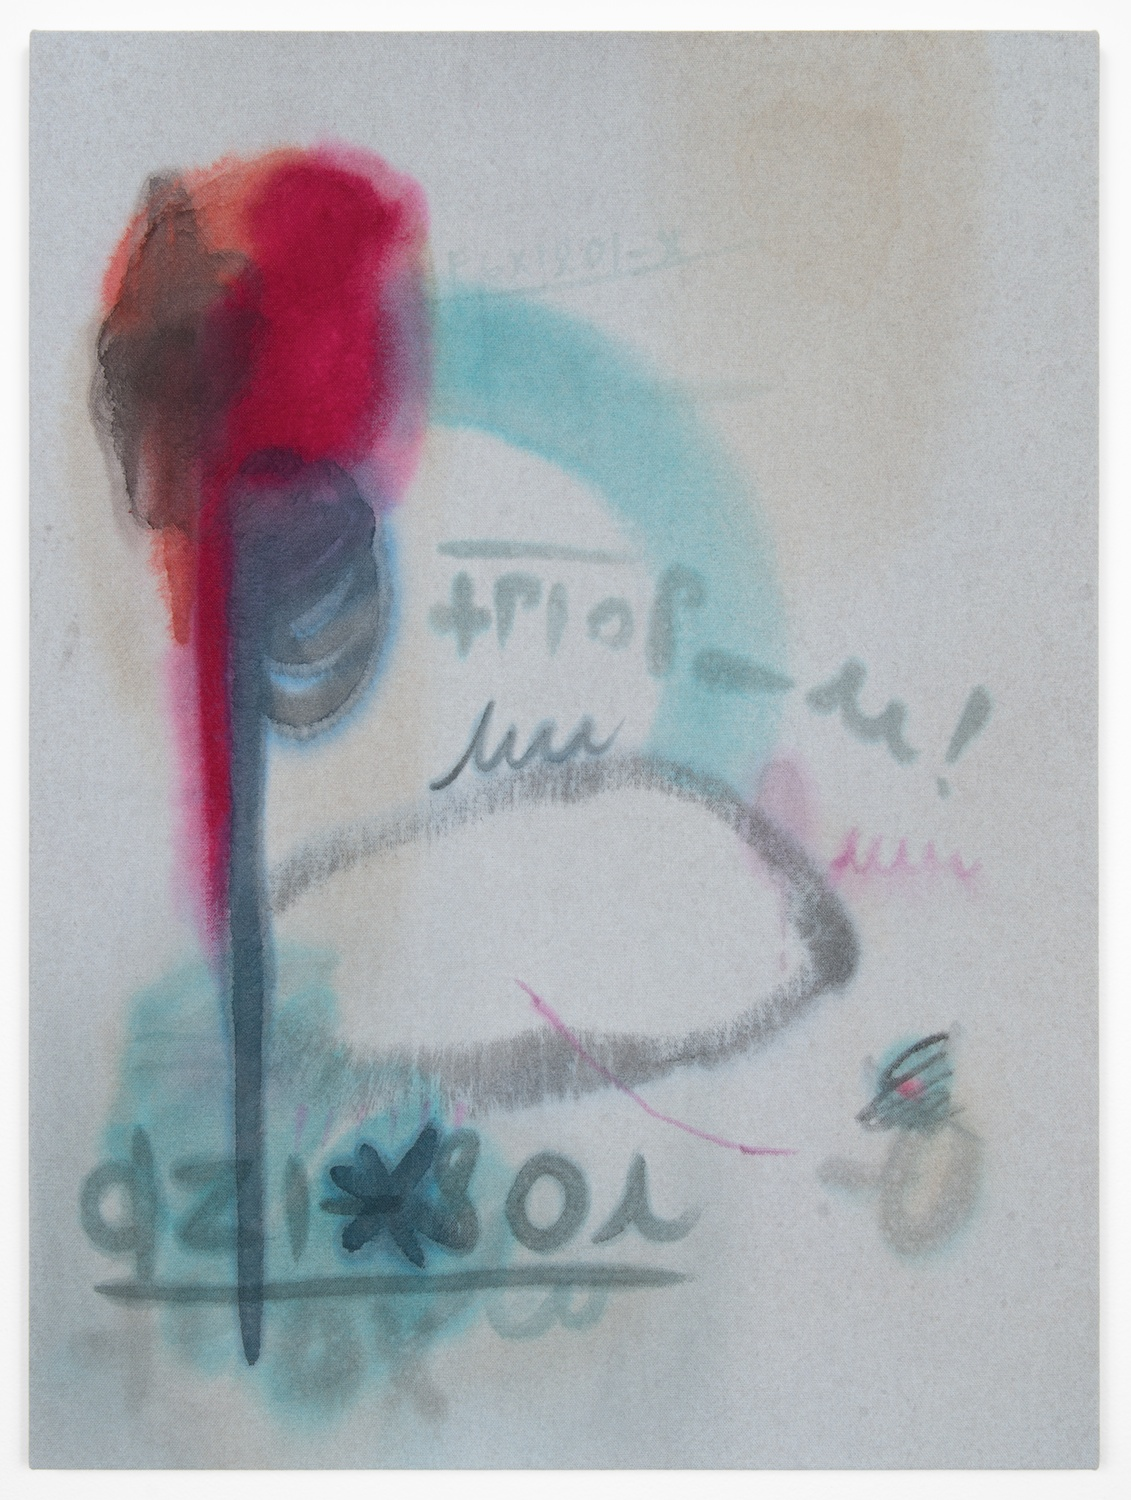 Amanda Ross-Ho  Untitled Painting (BLINK 182)  2013 Acrylic on dyed canvas 24h x 18w in ARH043